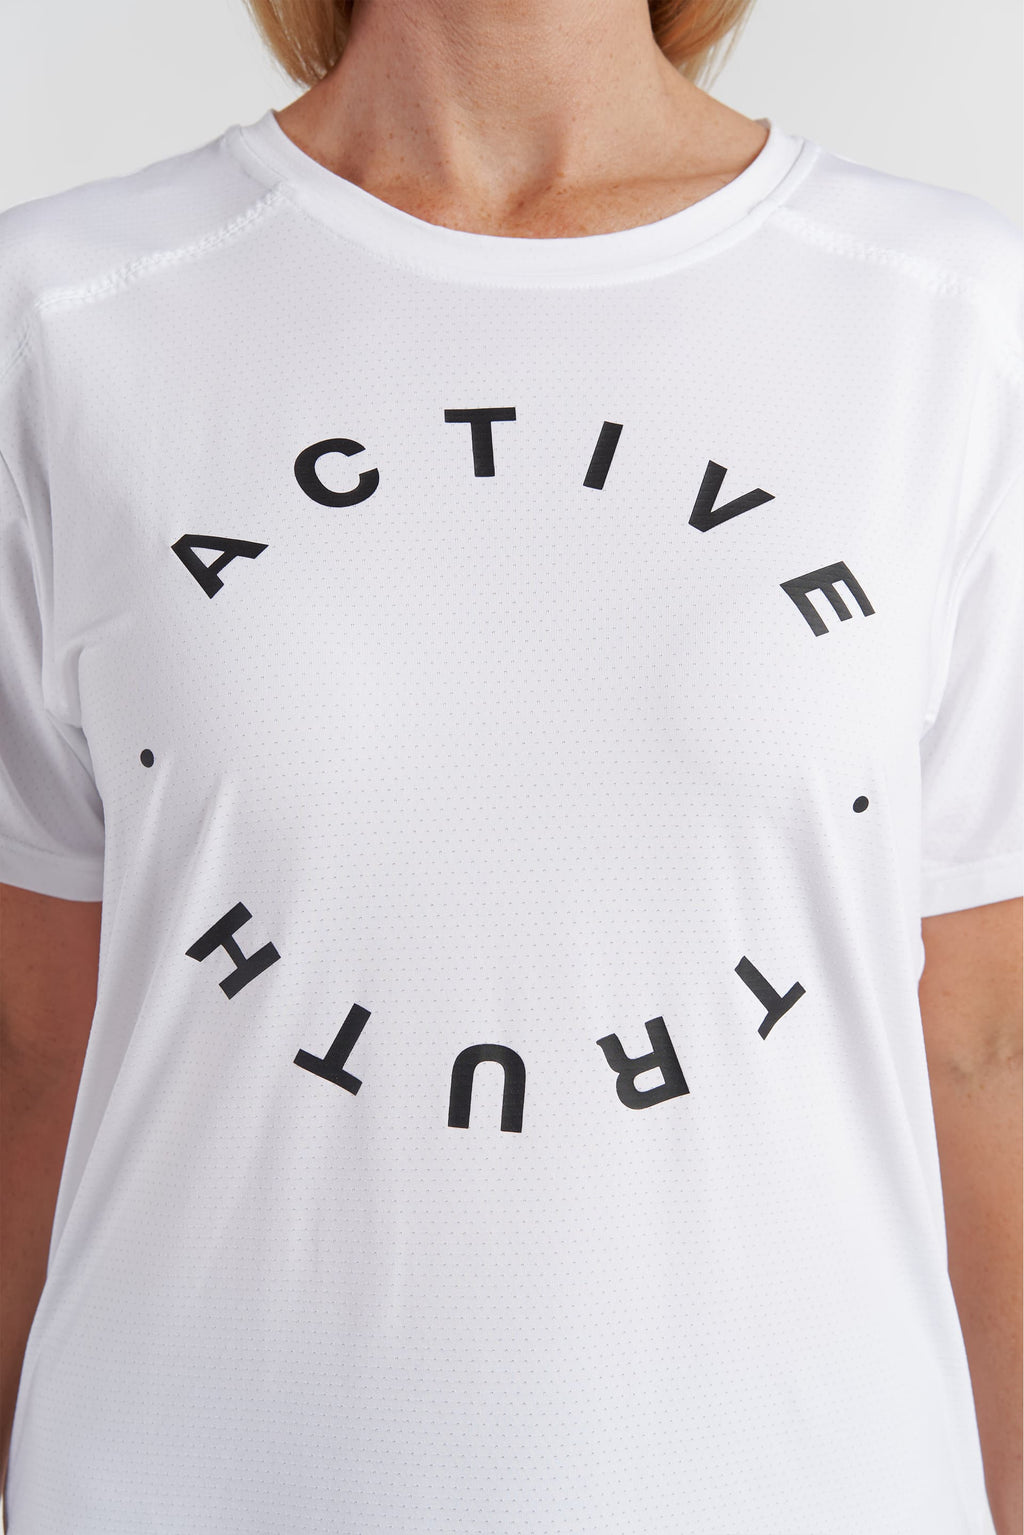 Performance T-Shirt - White Circle from Active Truth™